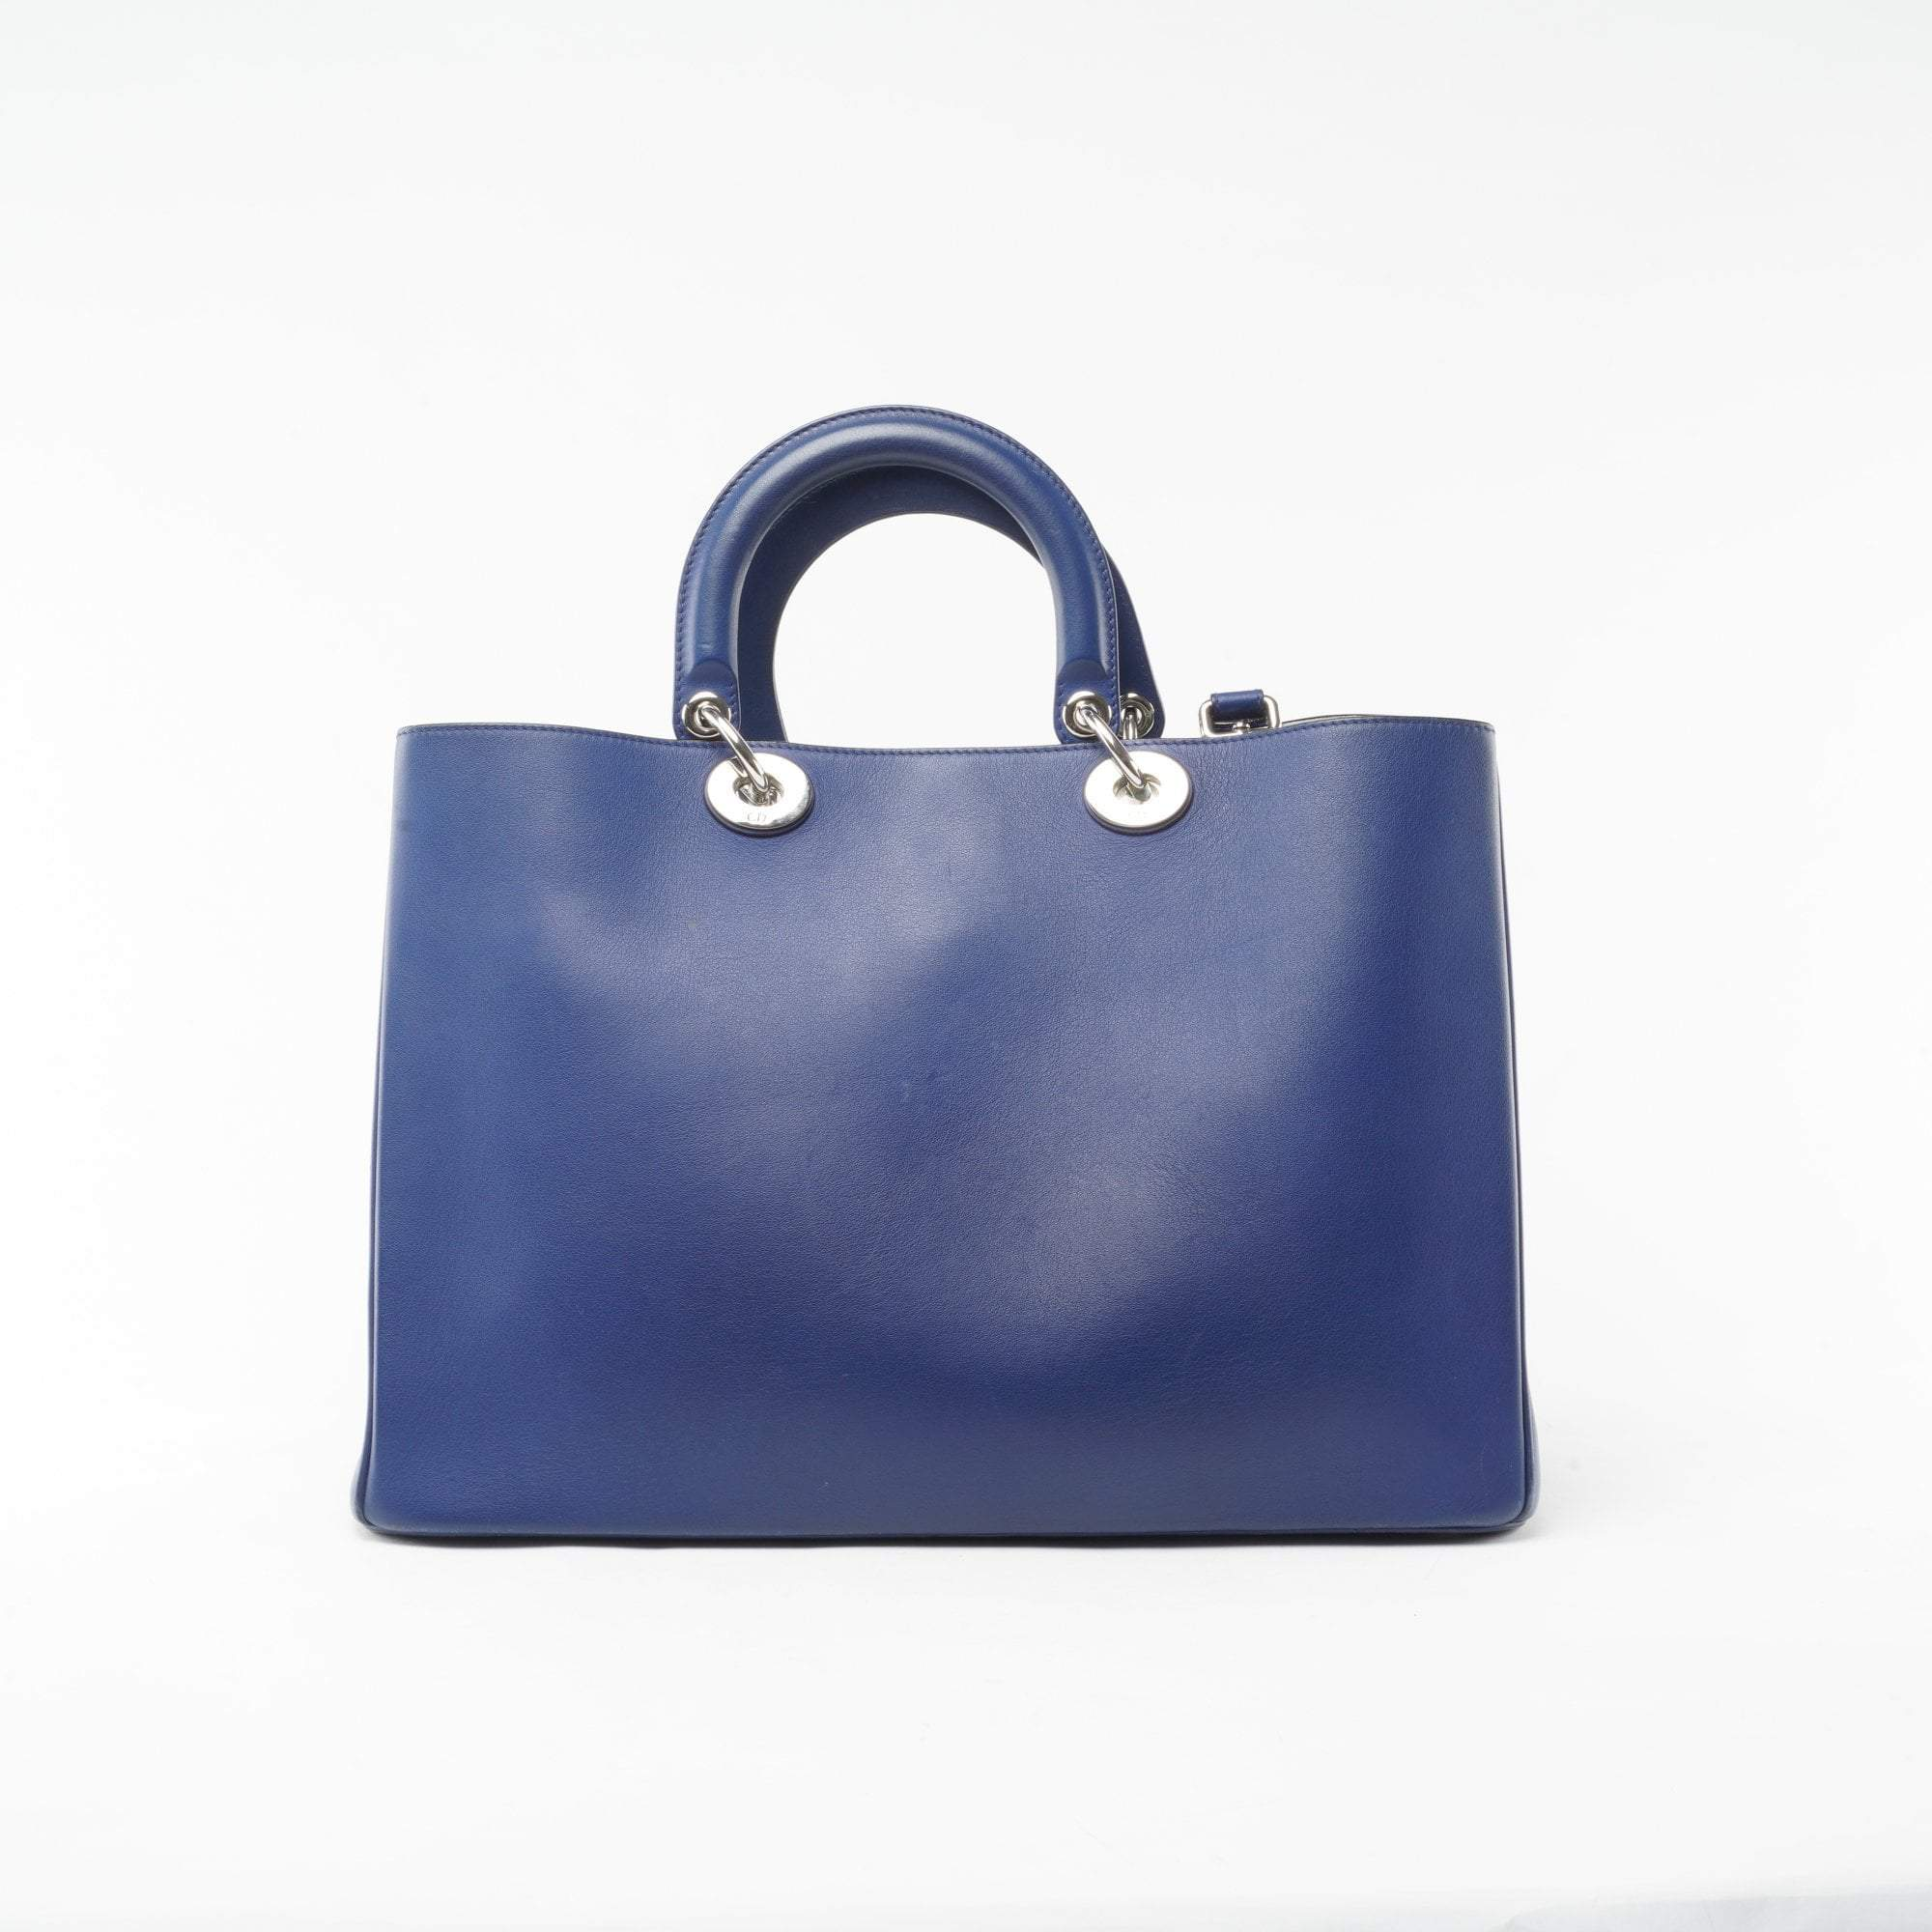 Christian Dior Large Blue Diorissimo Bag